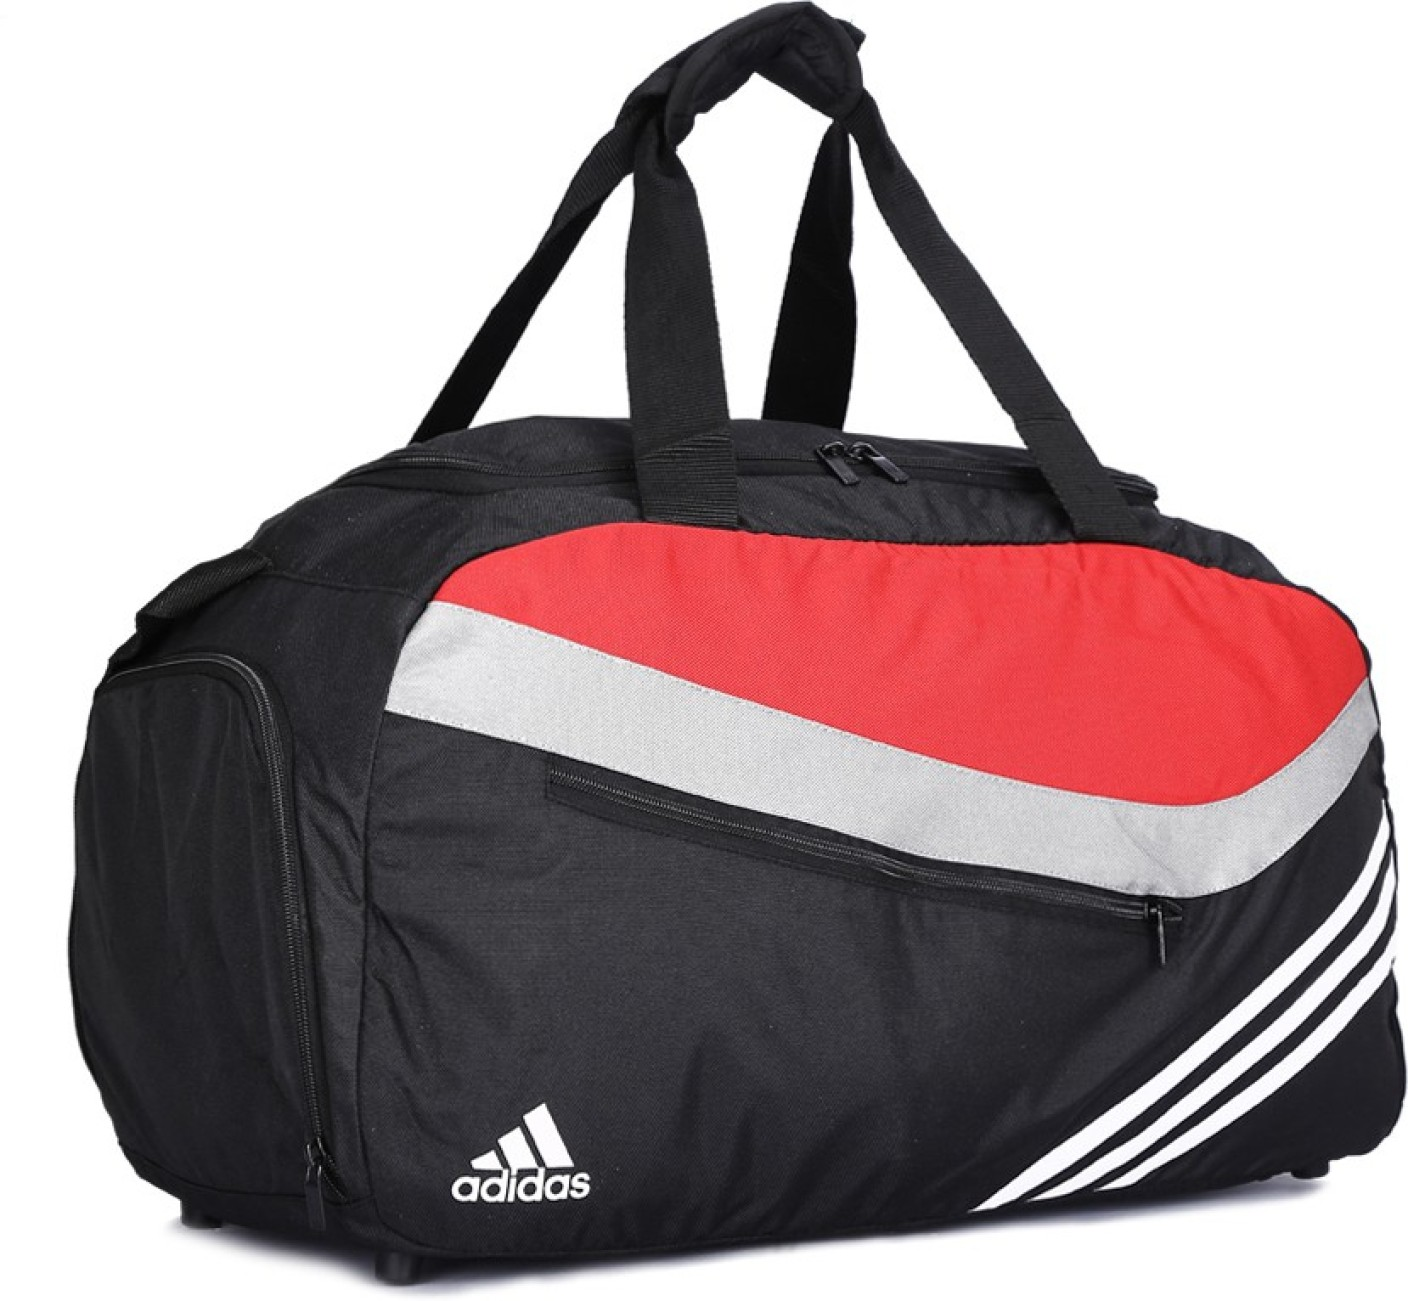 Gym Bag Flipkart: Adidas Travel Duffel Bag Black - Price In India